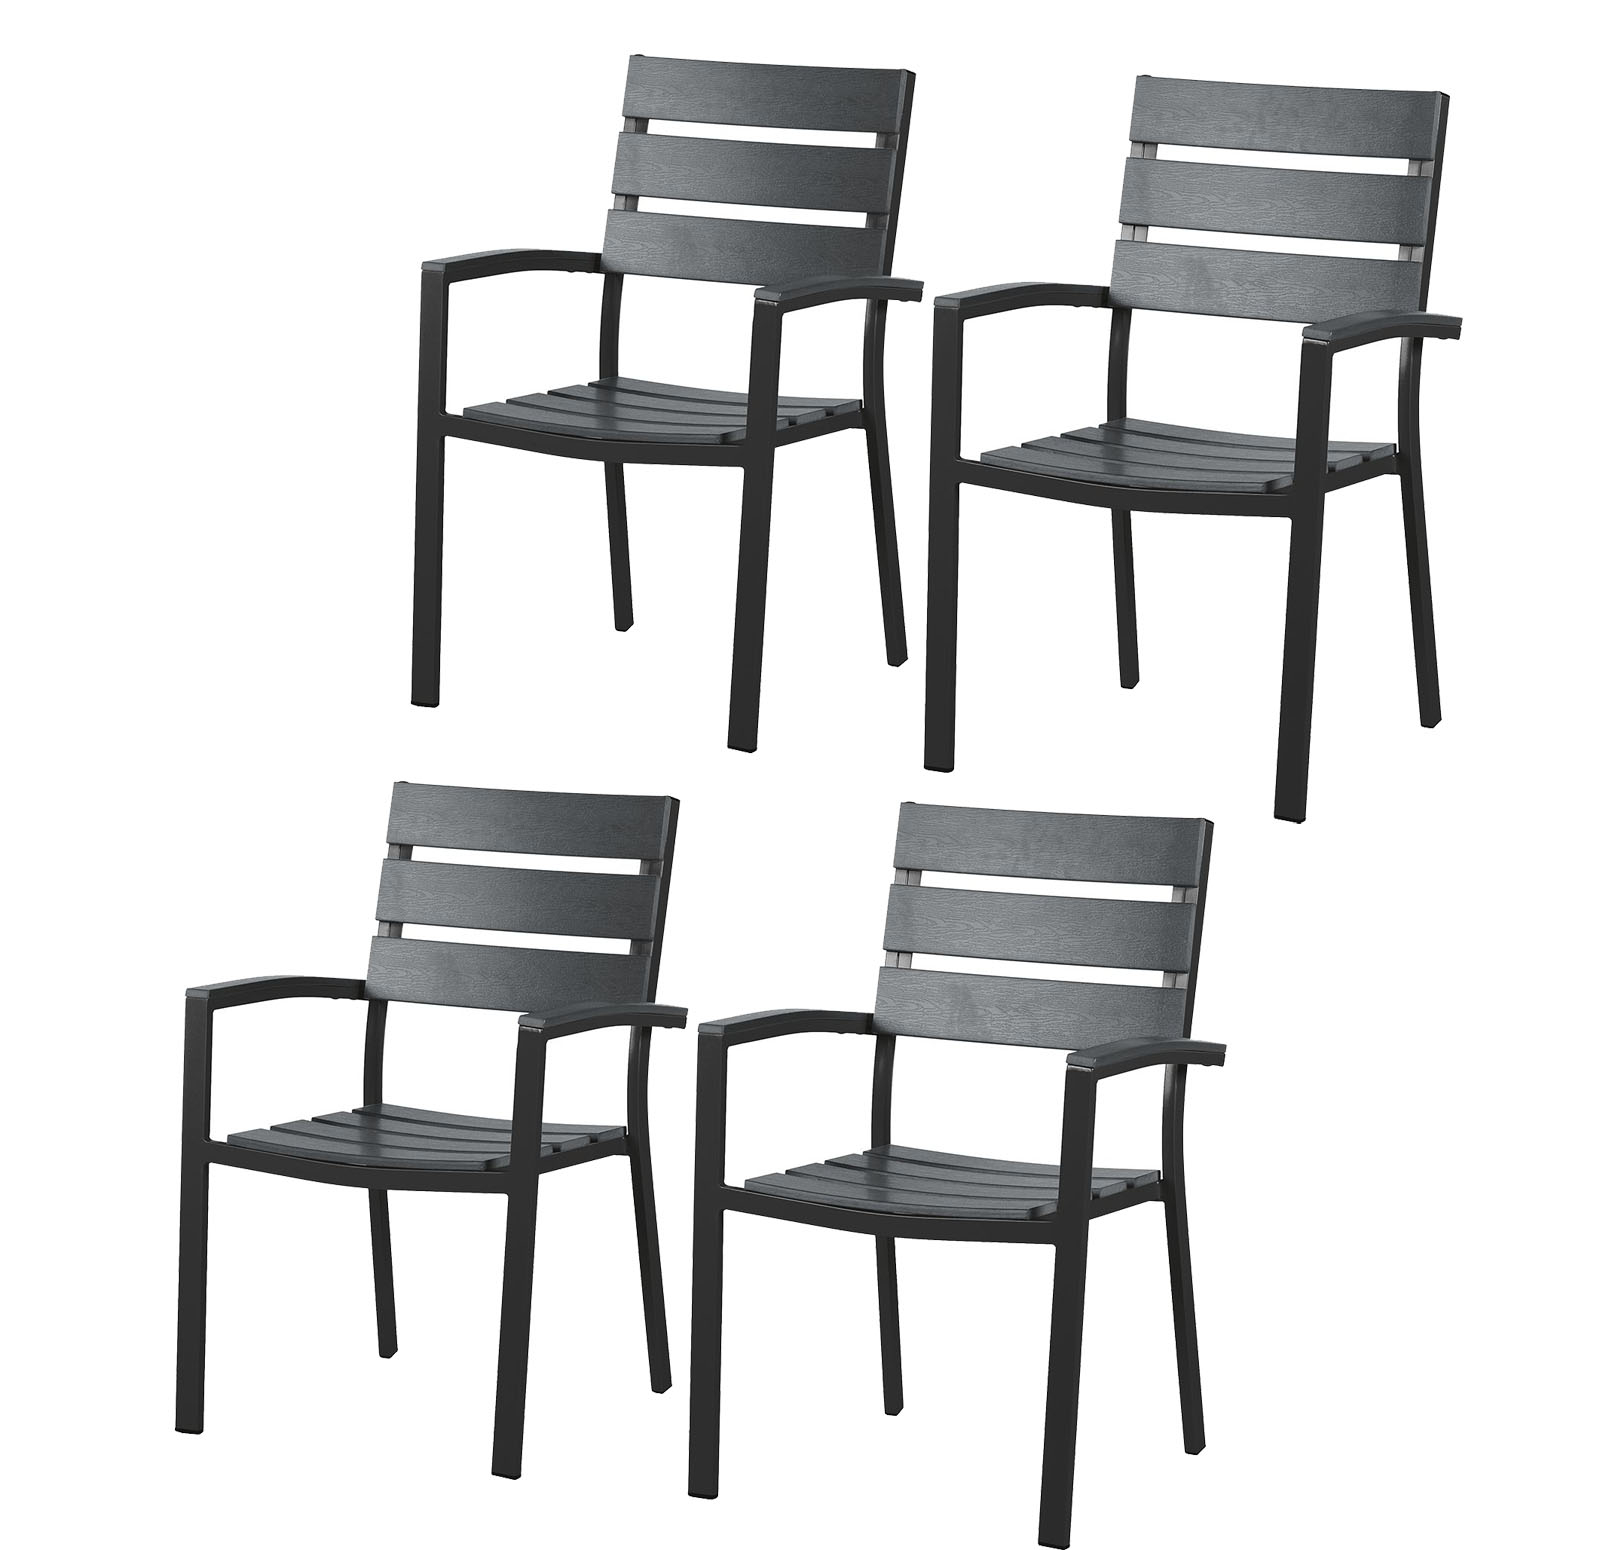 4x gartenstuhl polywood aluminium alu sessel stuhl set. Black Bedroom Furniture Sets. Home Design Ideas